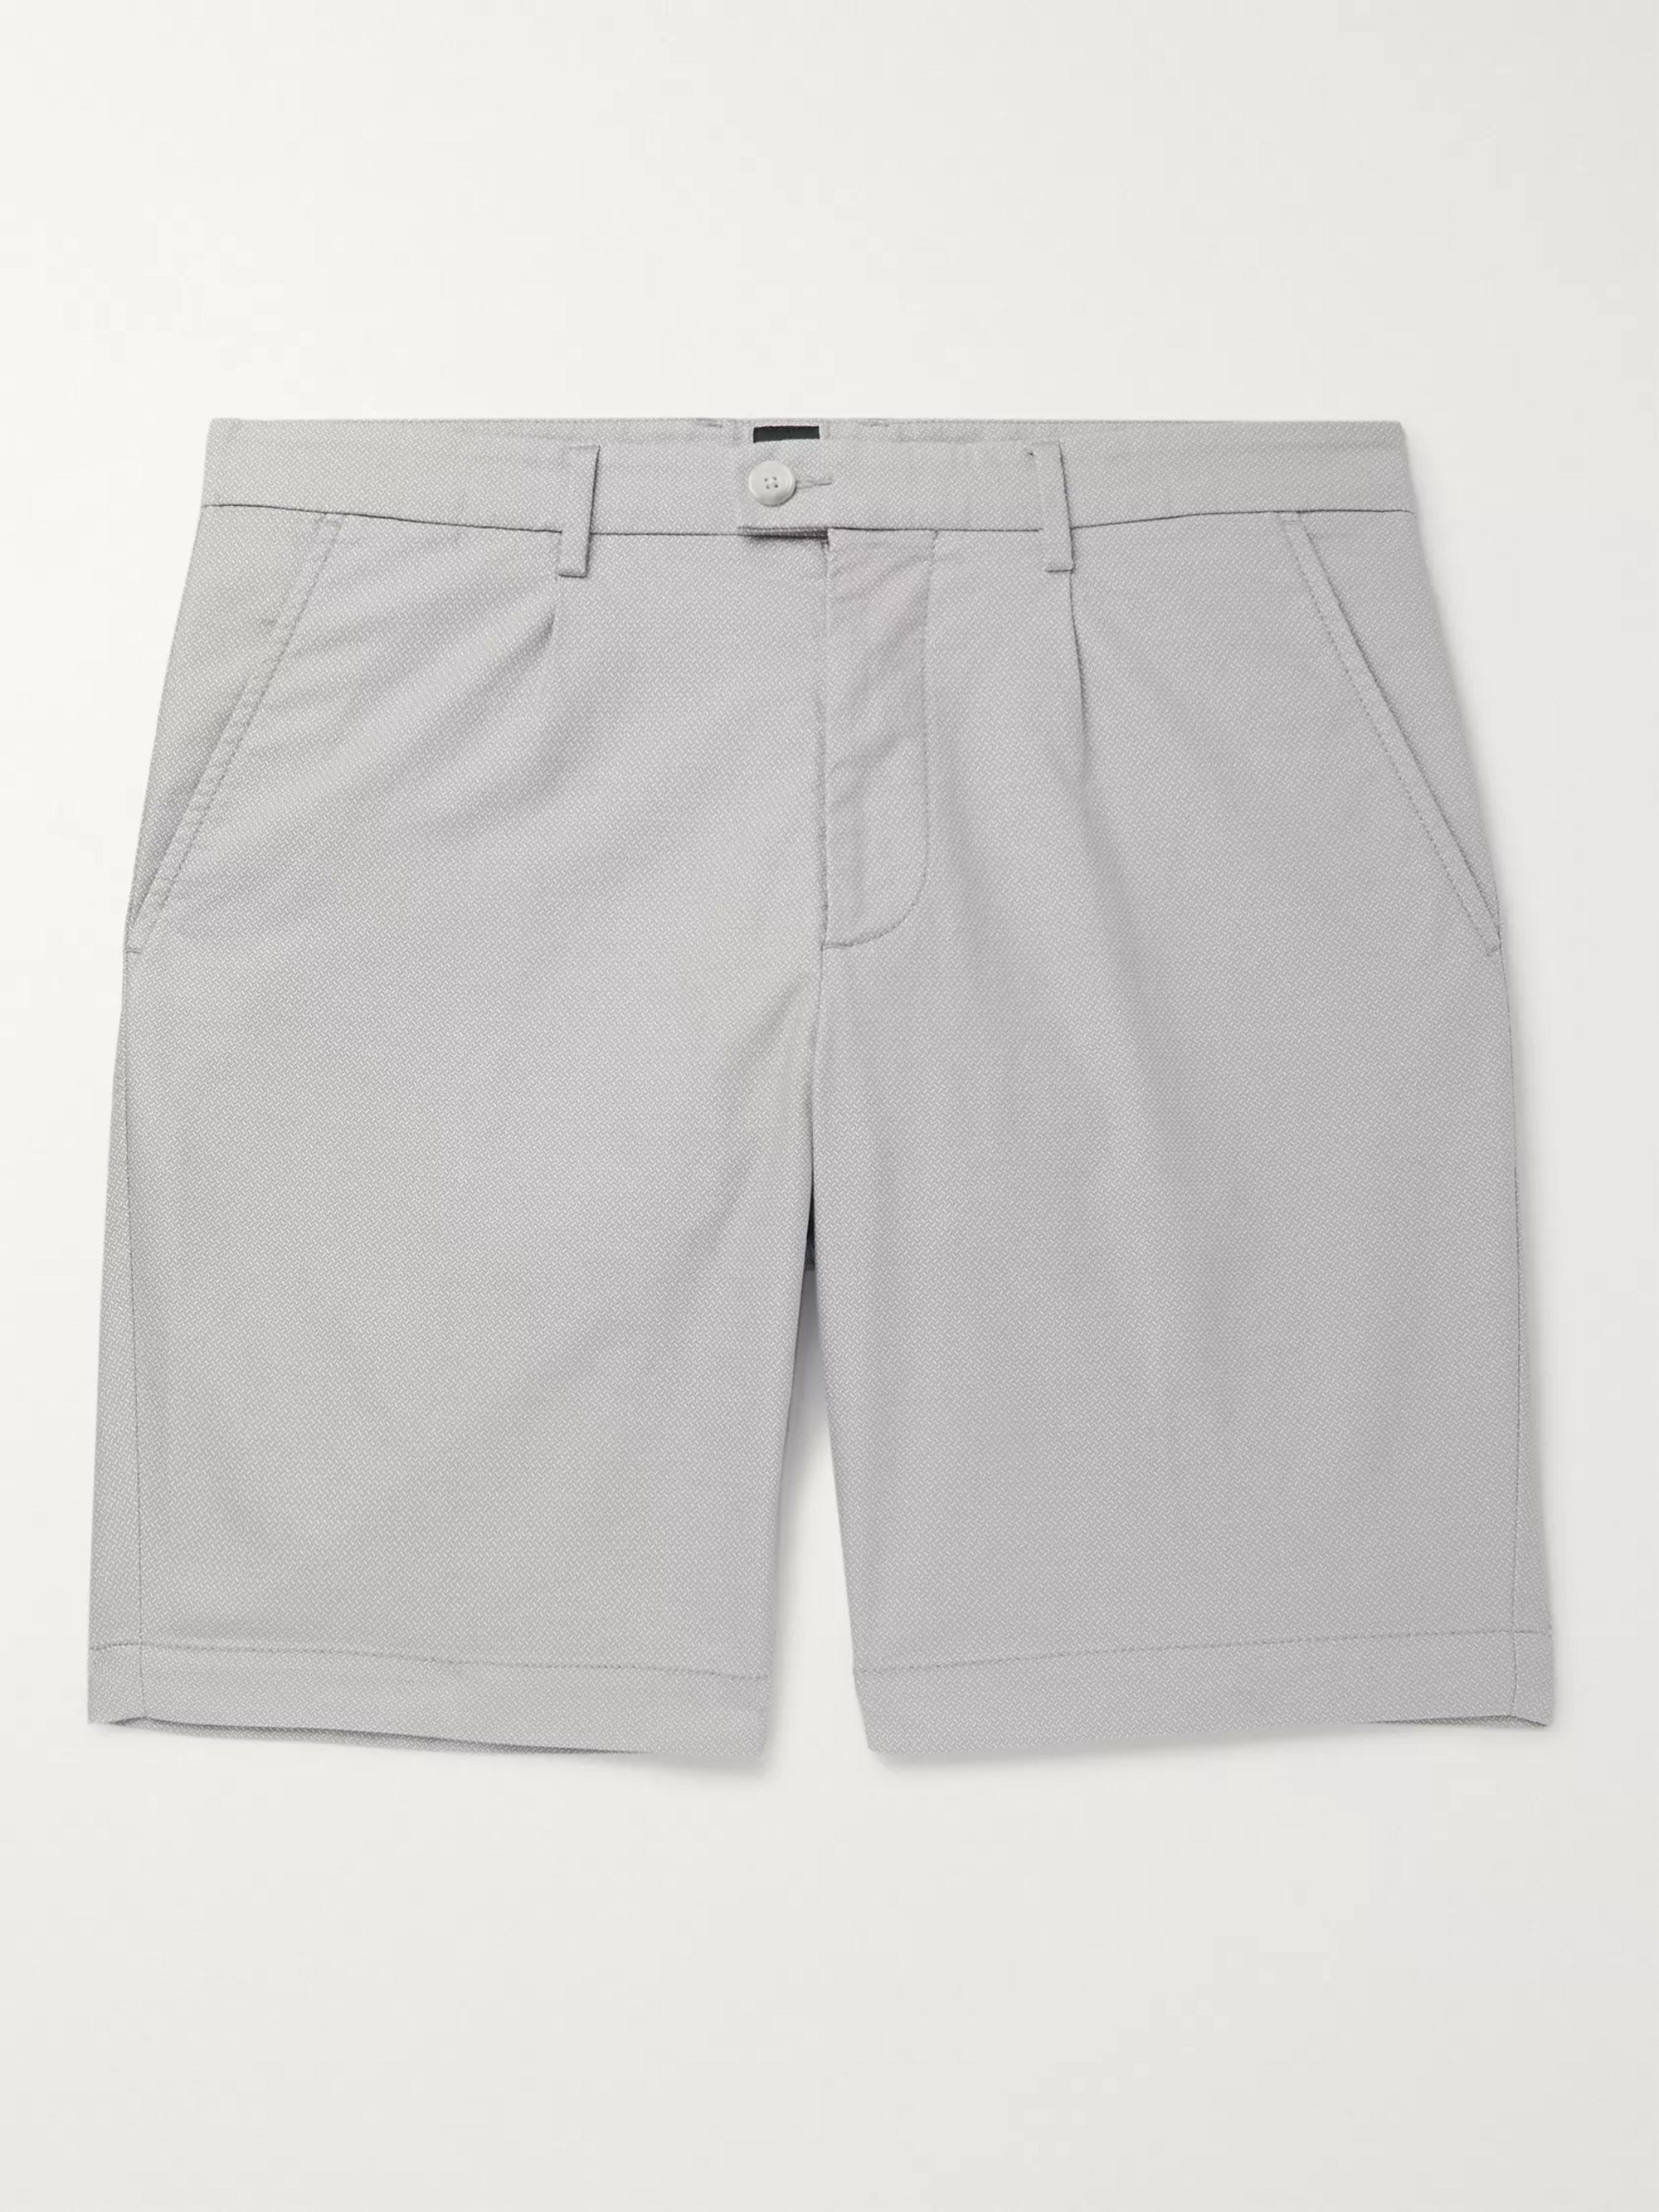 Hugo Boss Slice Slim-Fit Cotton-Blend Jacquard Shorts